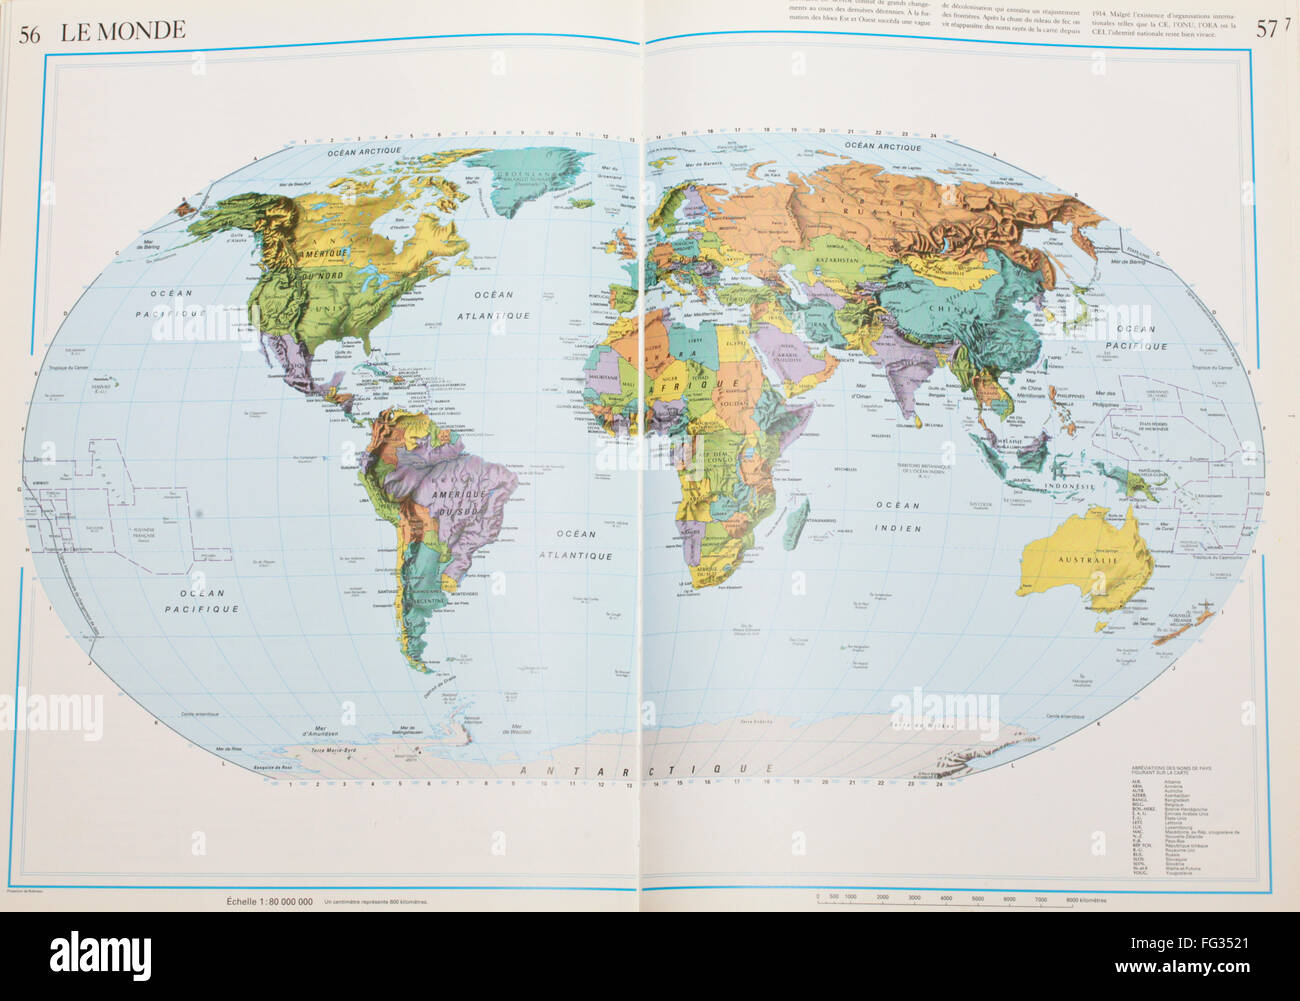 Books open world map stock photos books open world map stock french atlas book open on page with the world stock image gumiabroncs Image collections